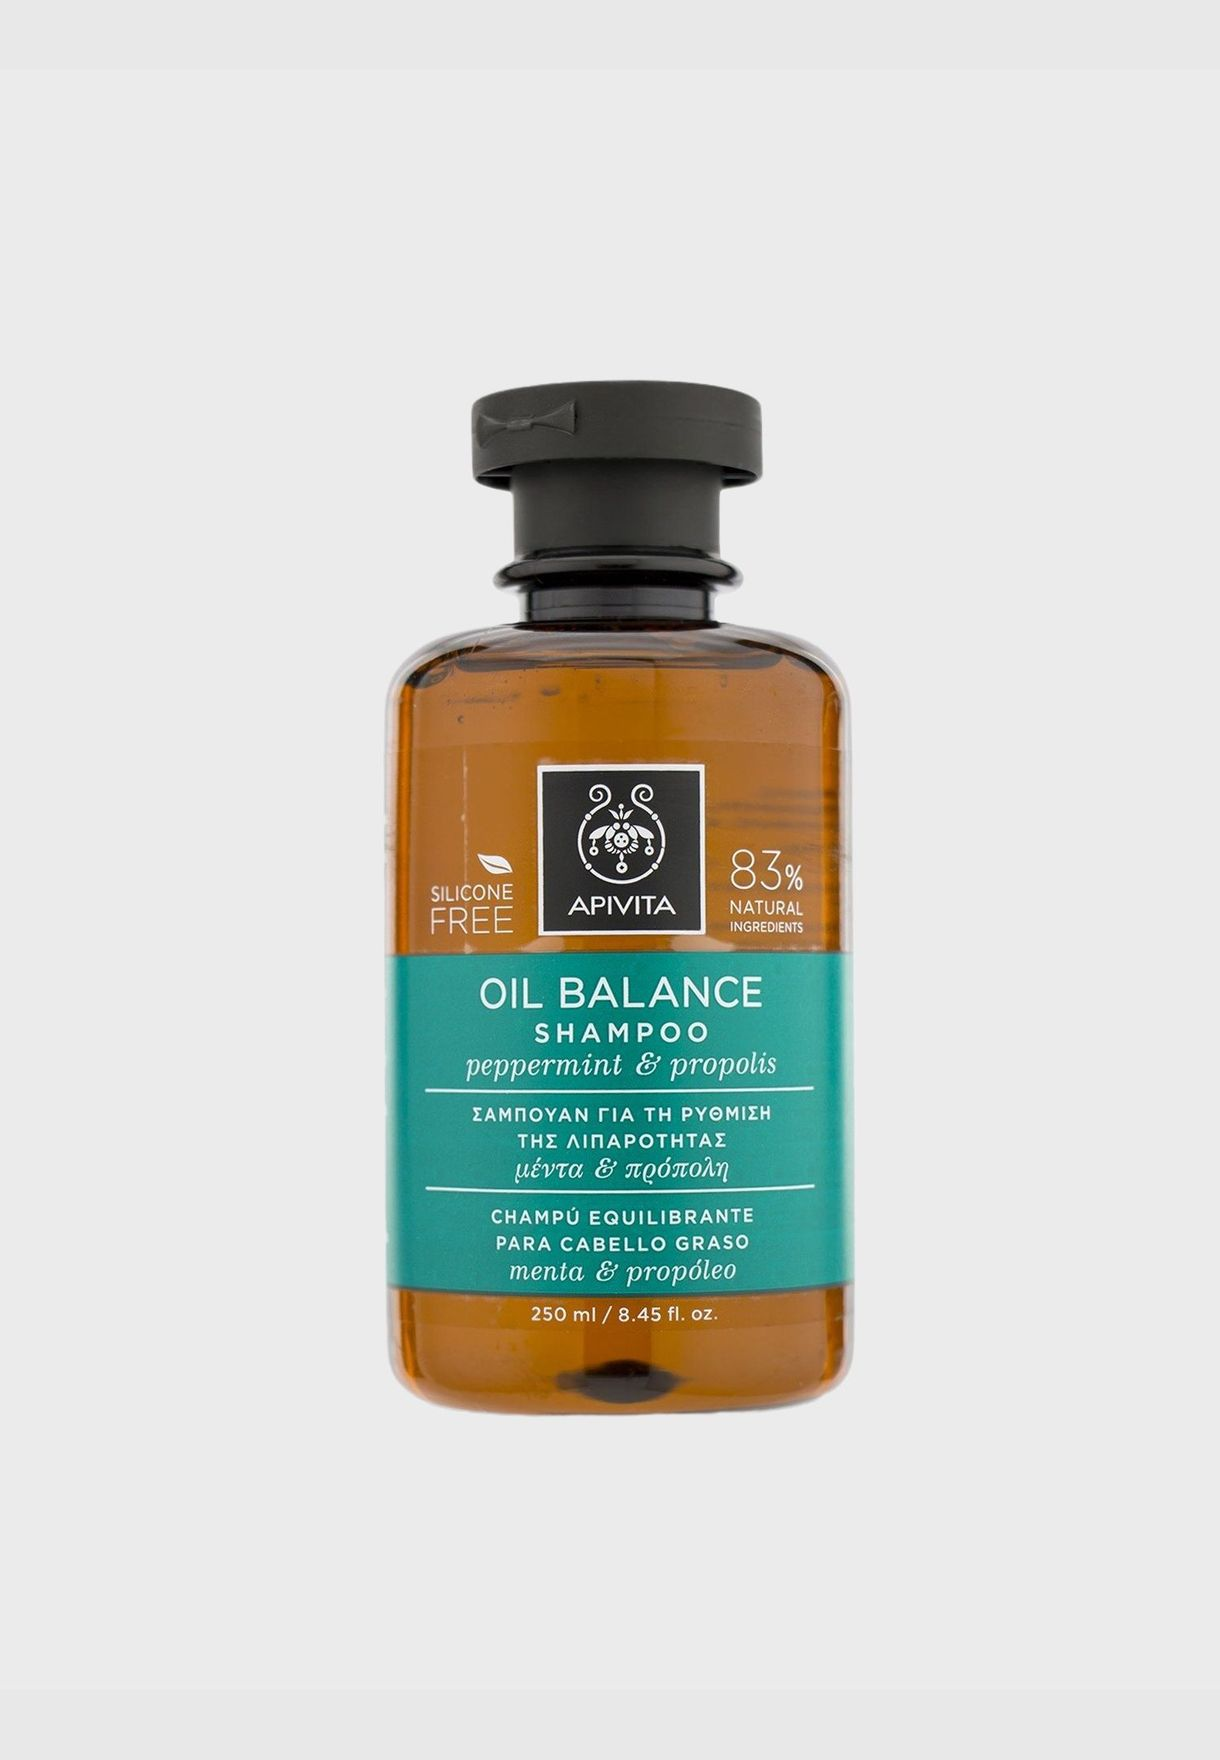 Oil Balance Shampoo with Peppermint & Propolis (For Oily Hair)